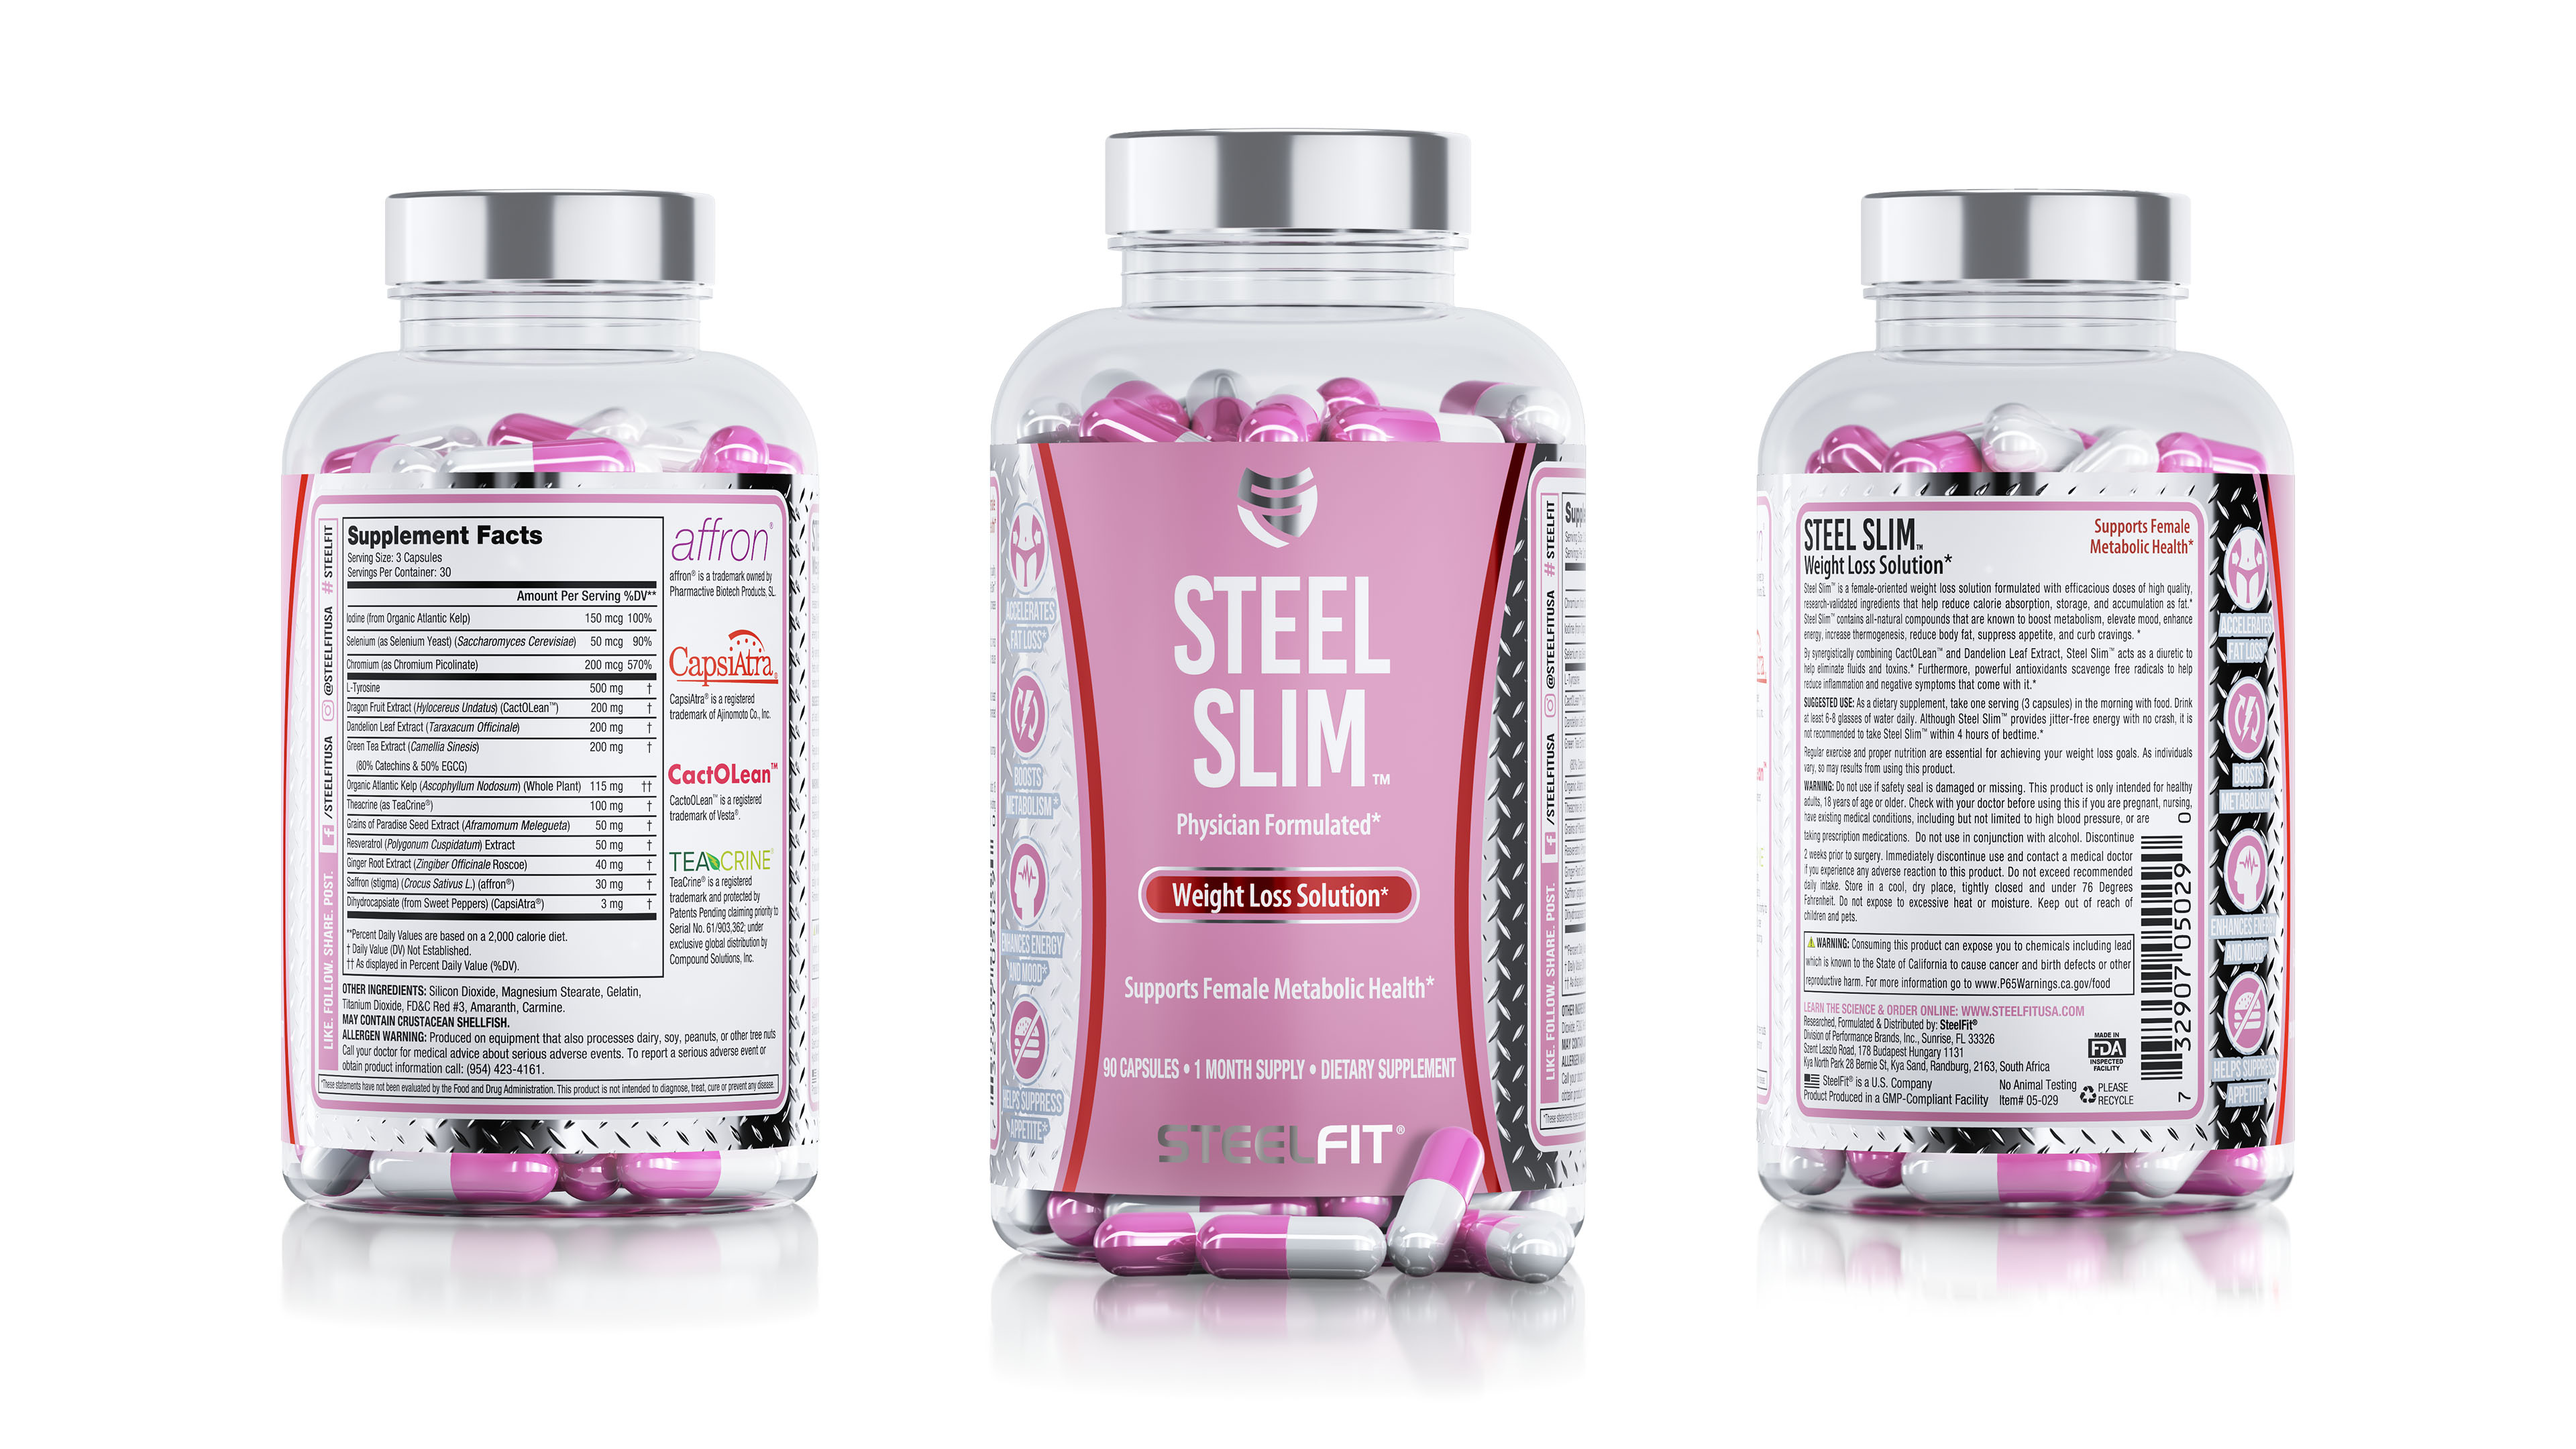 Steel Slim nutrition capsule container package renderings